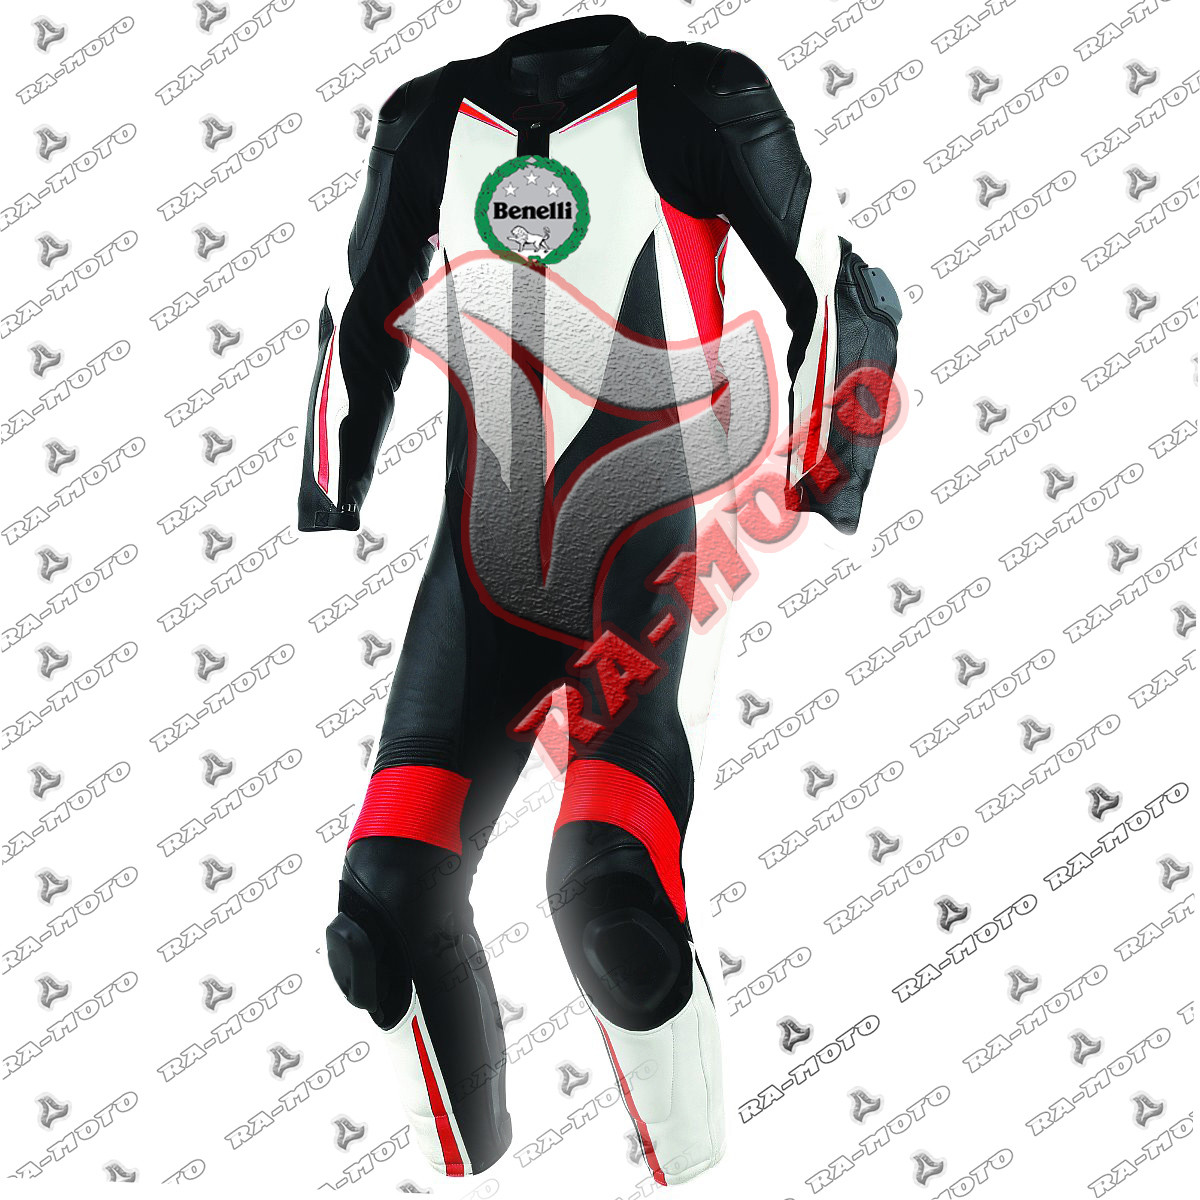 RA-15263Benelli black-white-fluo red Motorbike leather suit